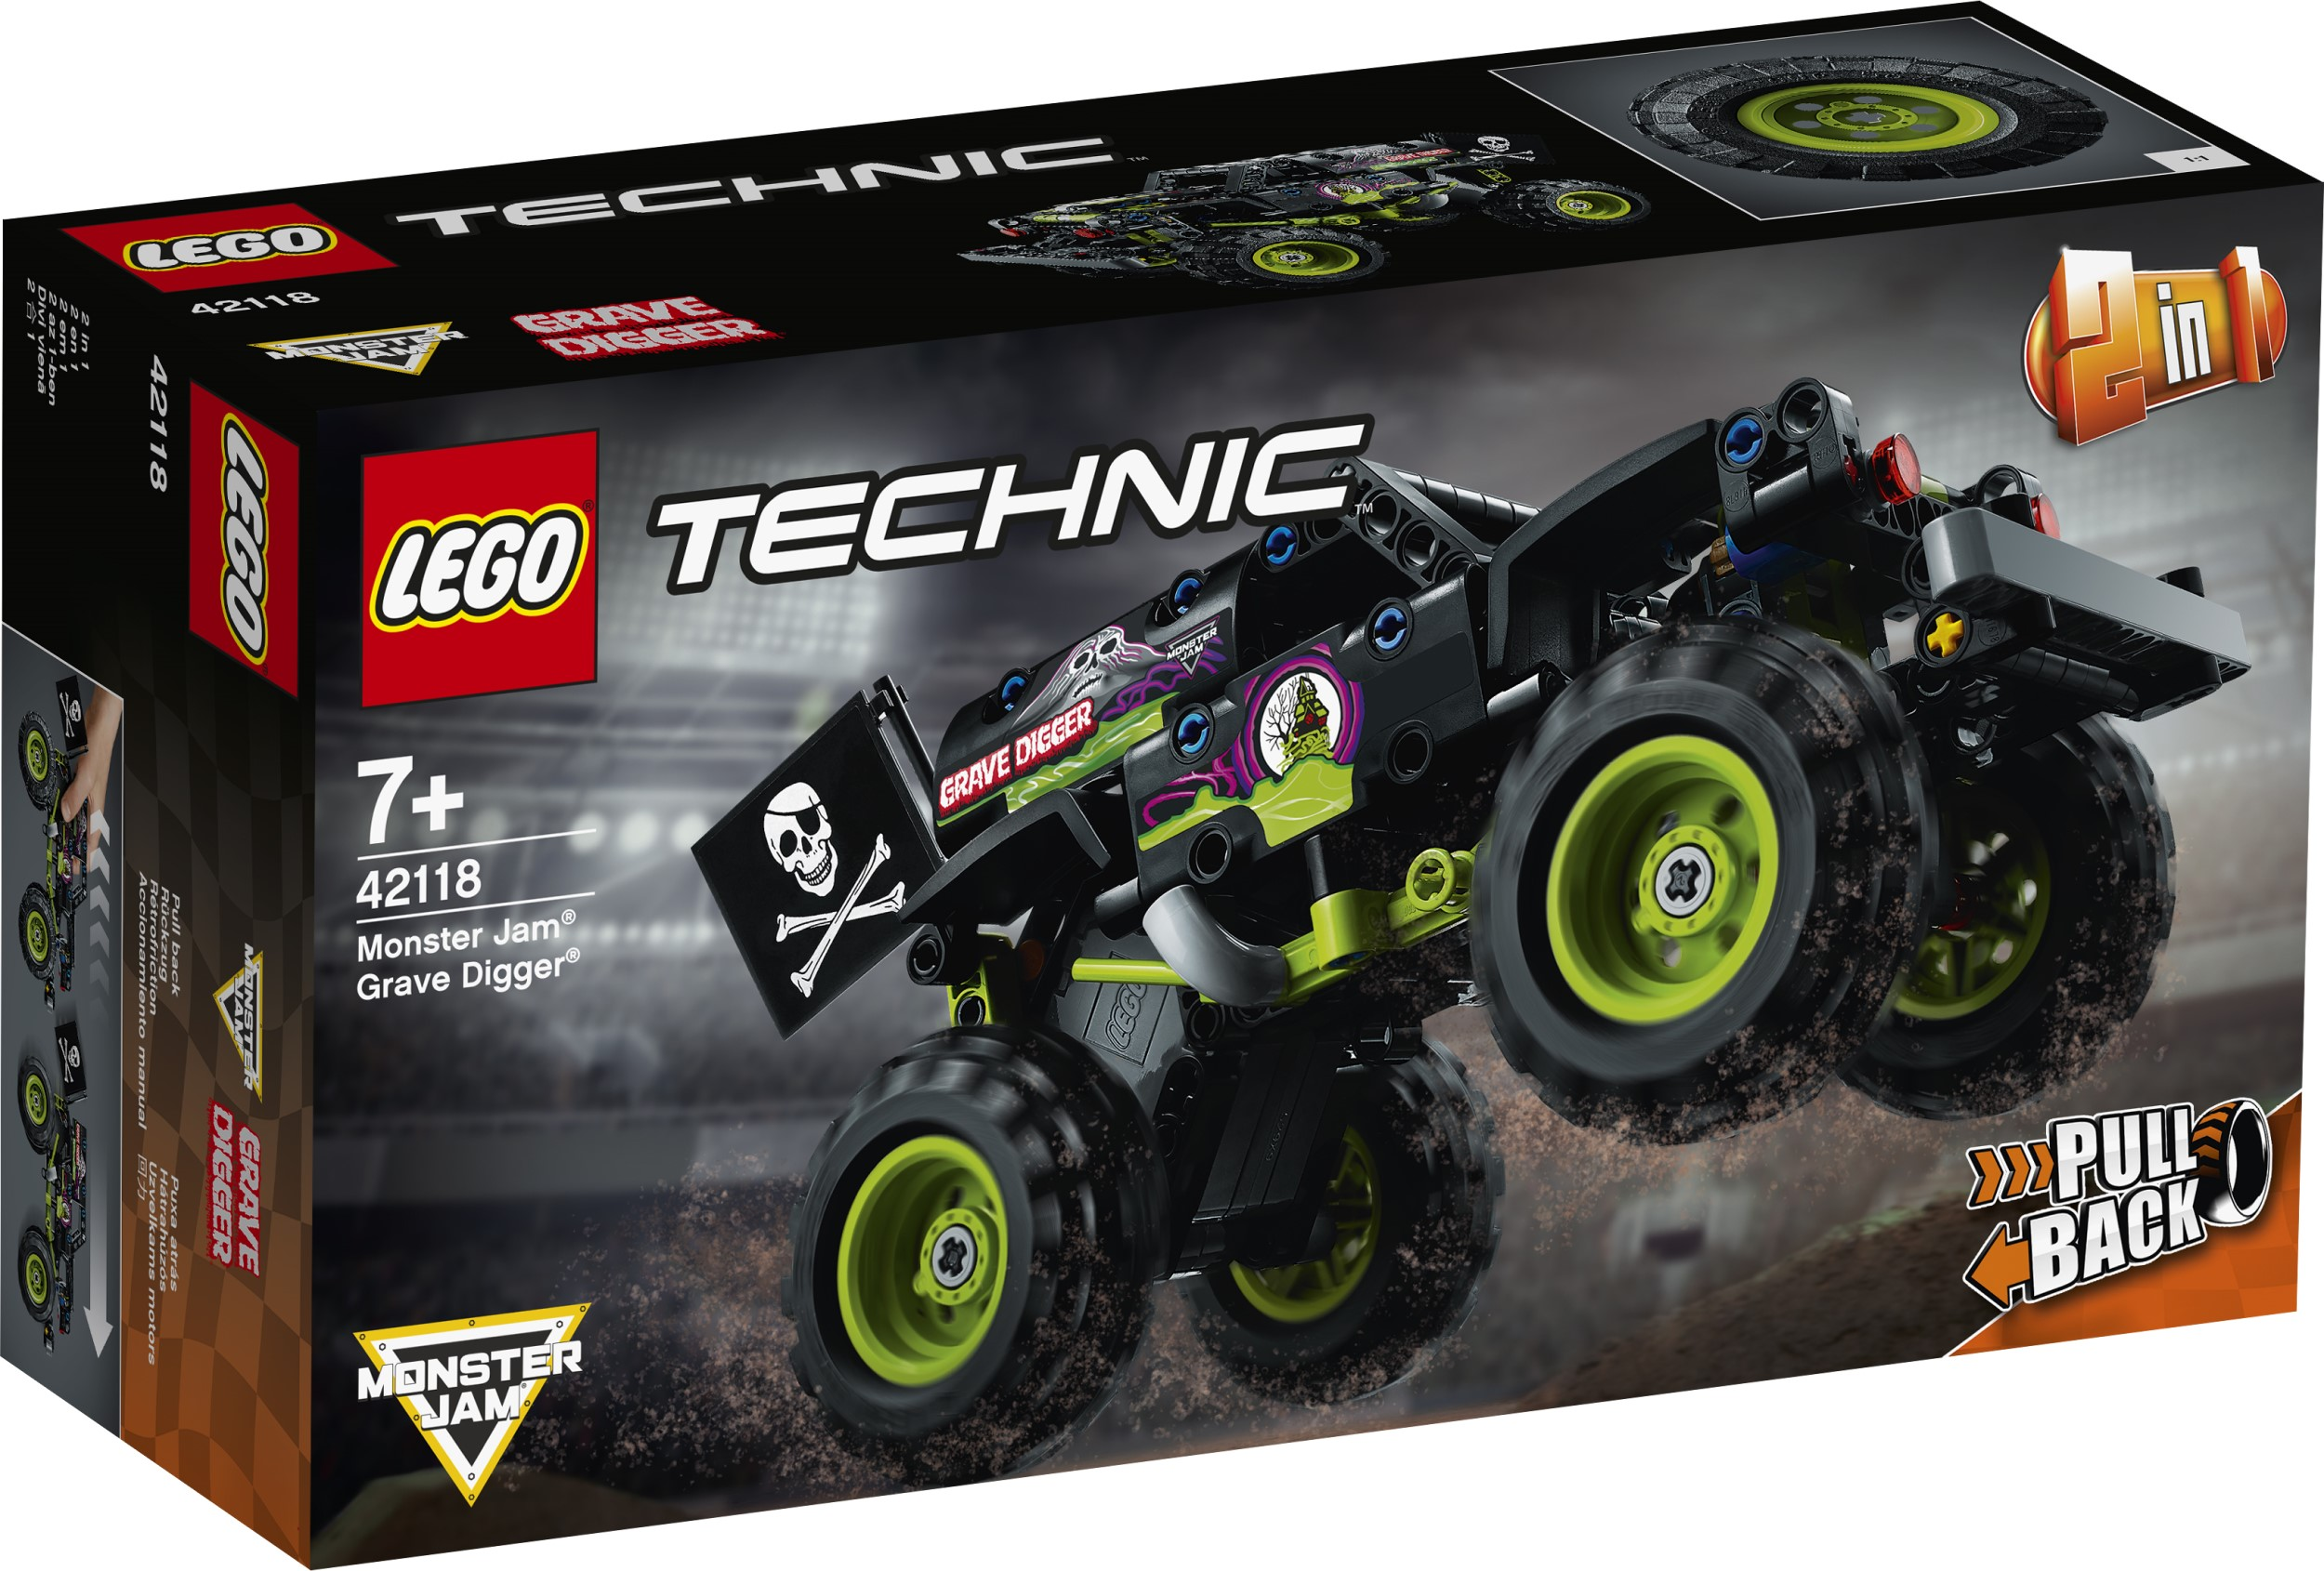 LEGO Technic Monster Jam series gets two new monster truck replicas 17